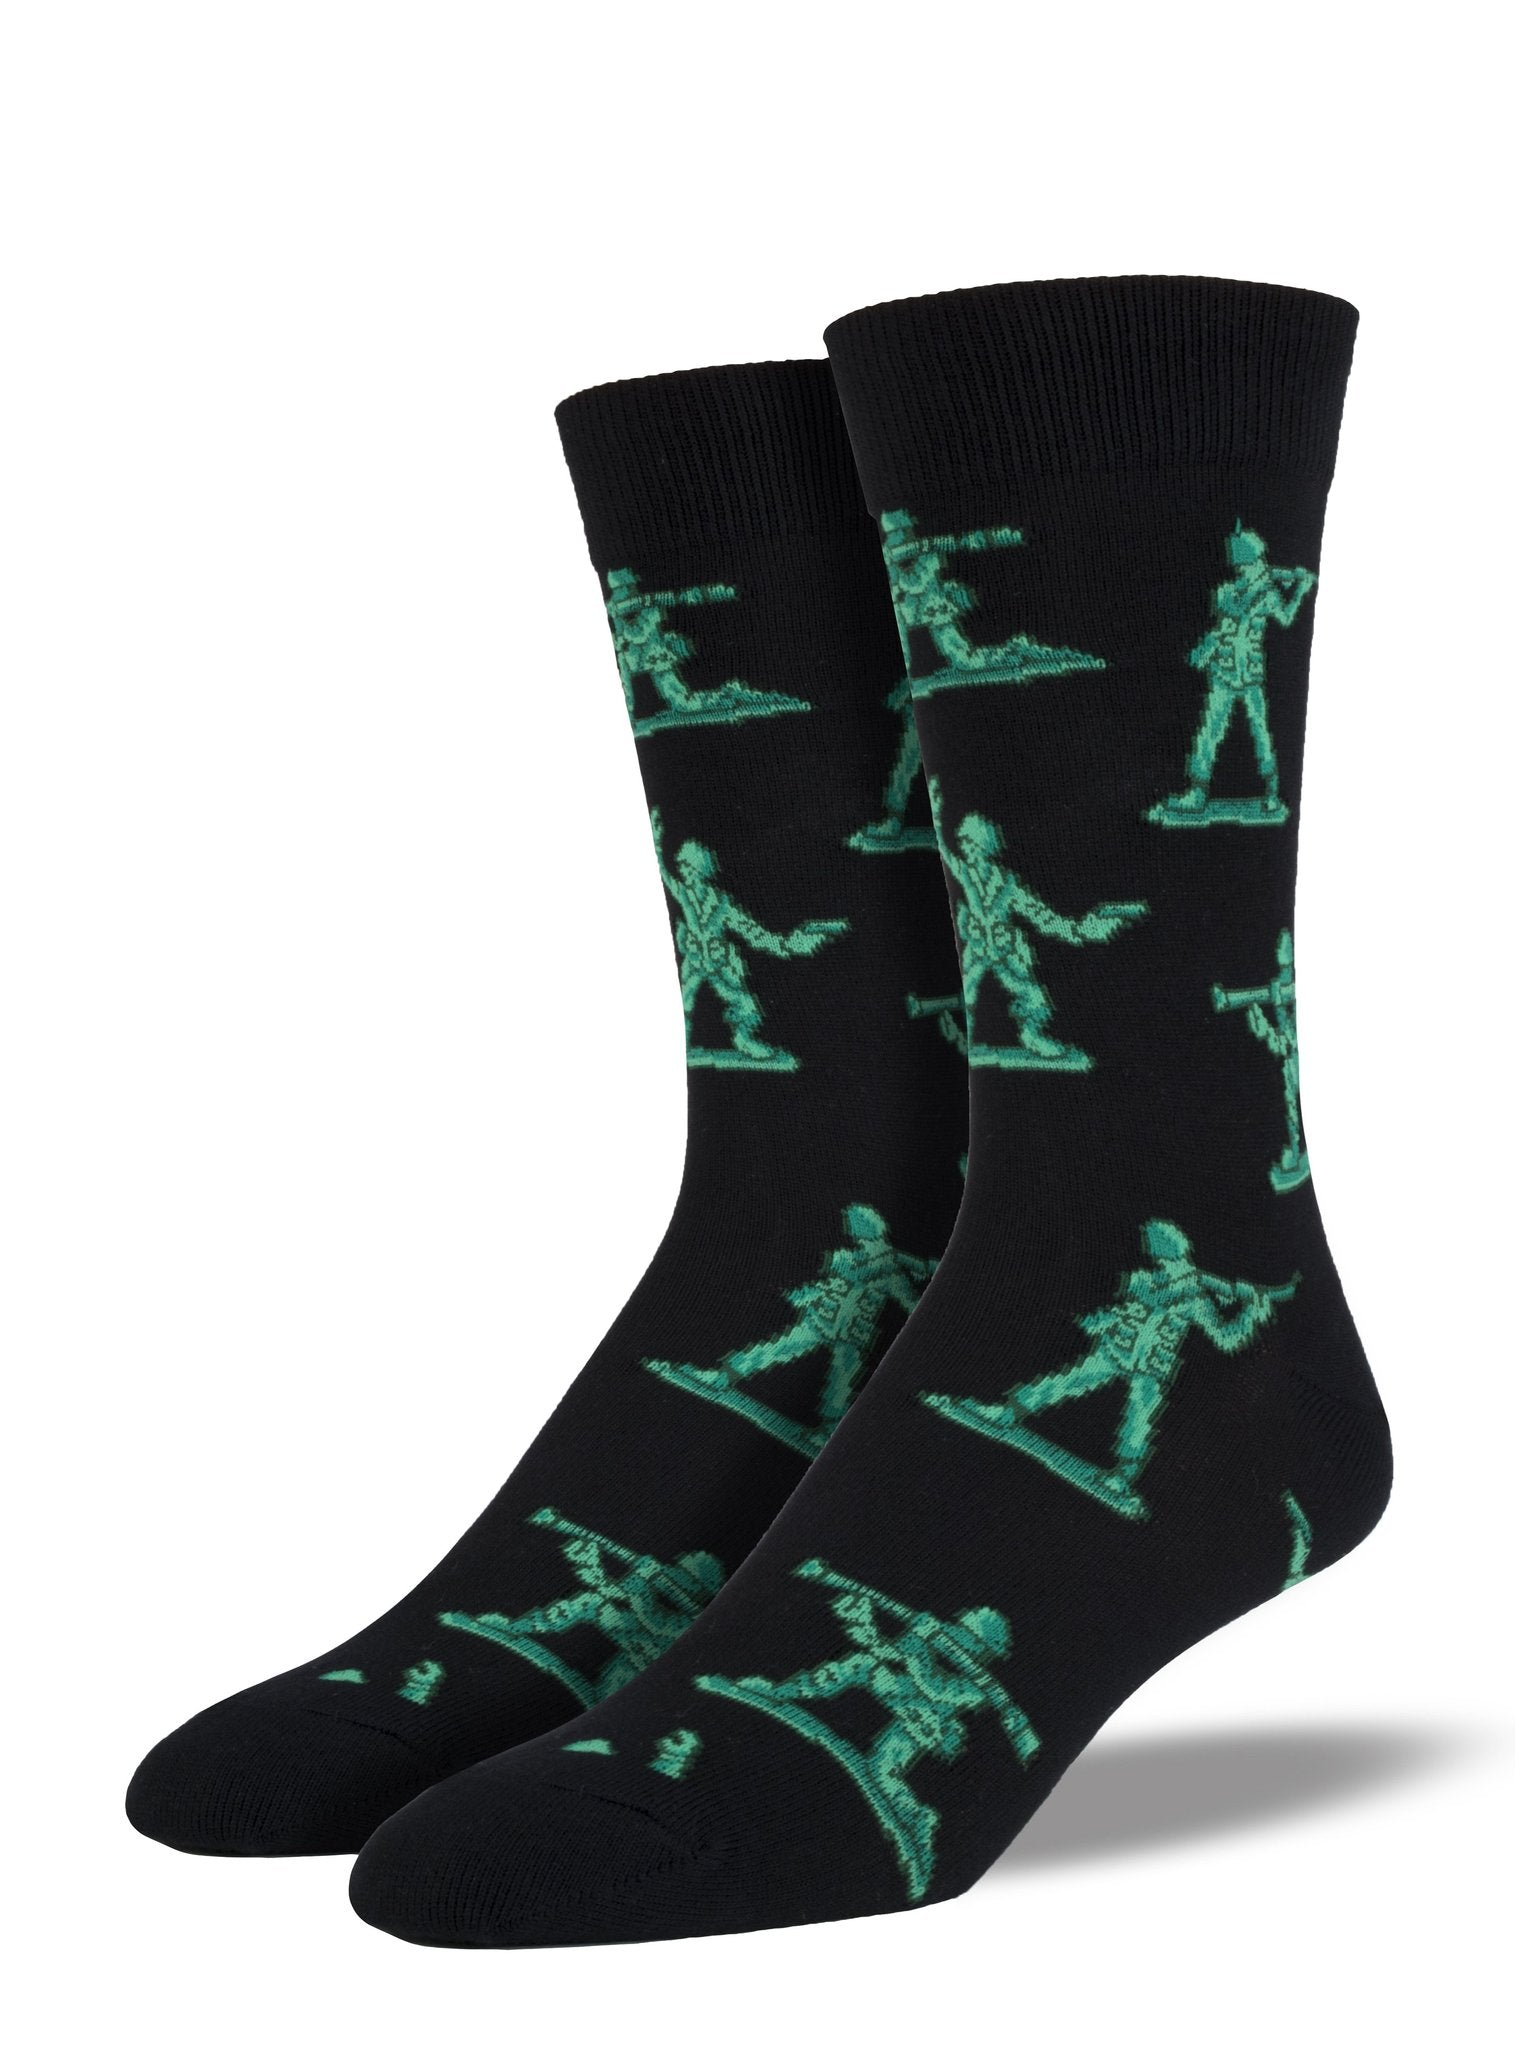 Men's Army Toy Soldier Socks